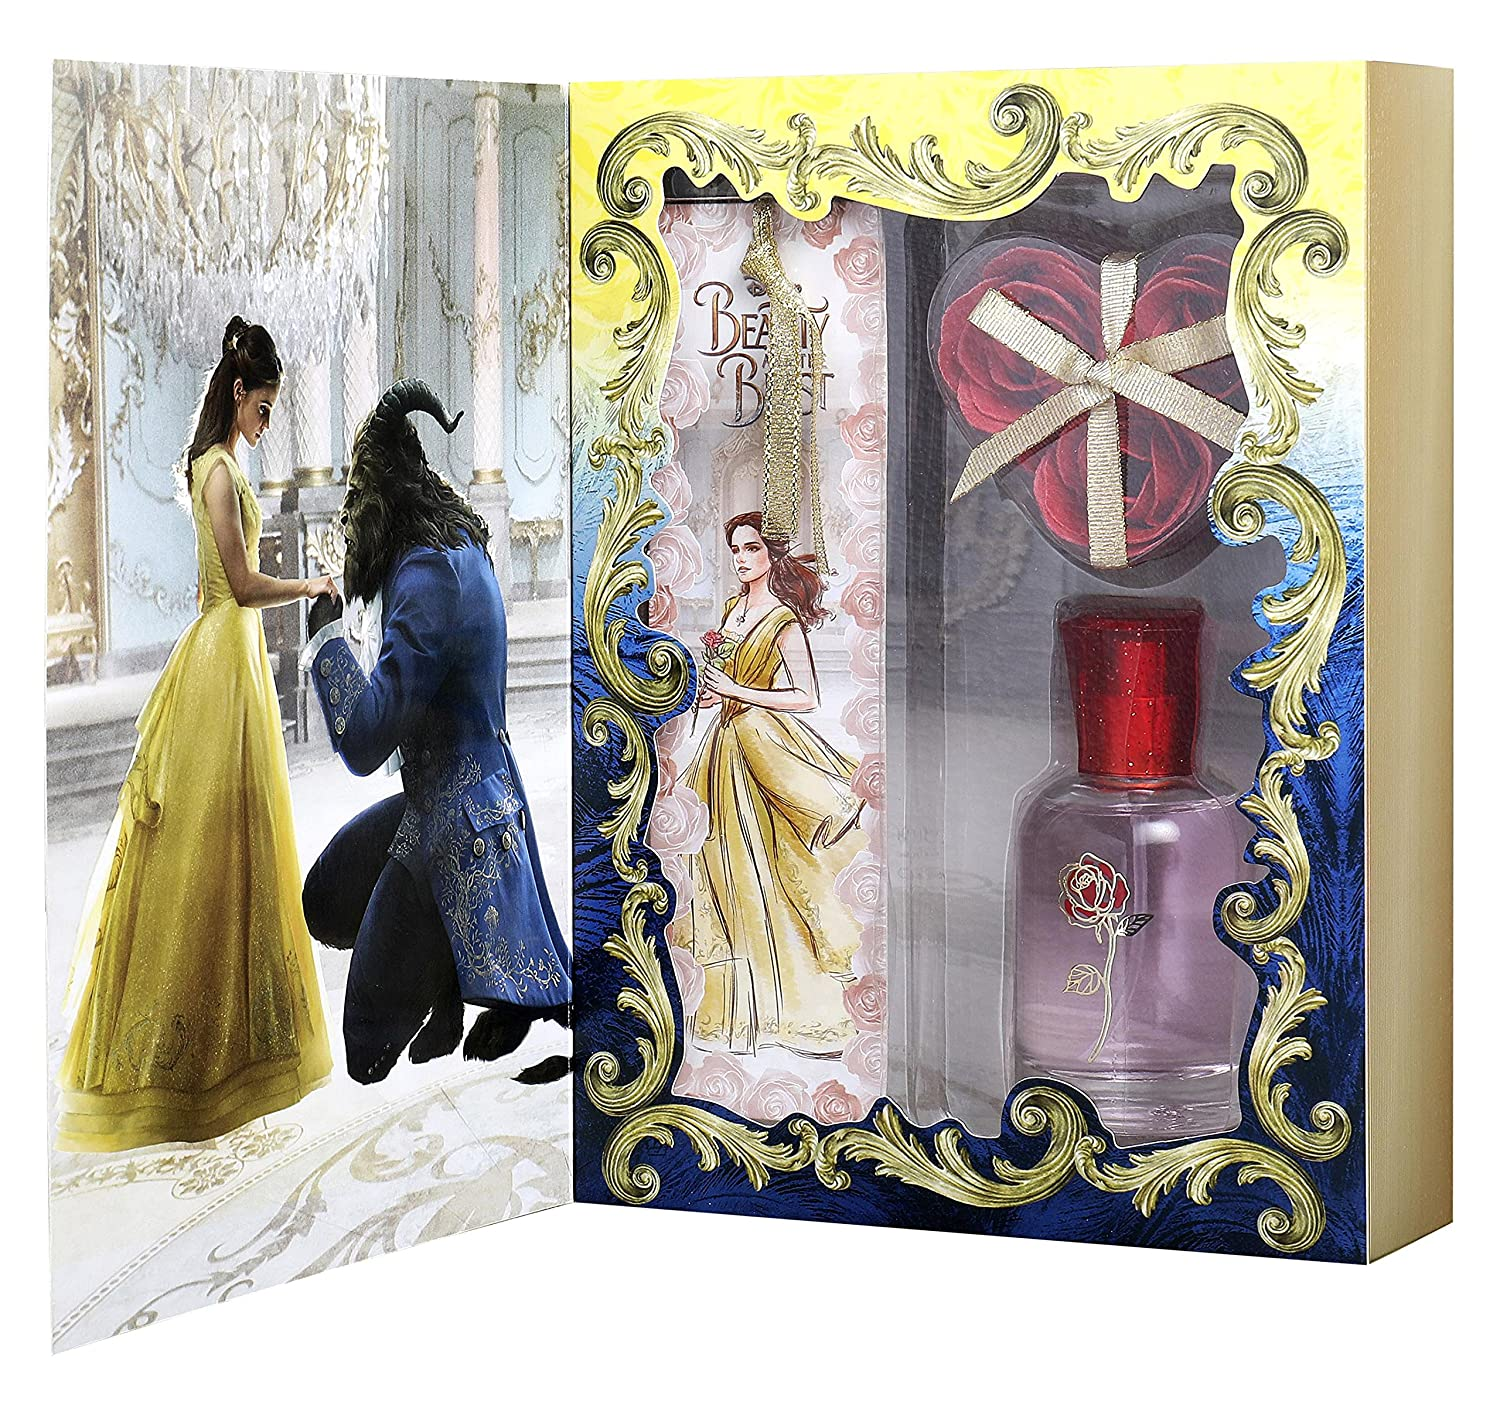 Disney Beauty and the beast for kids - 3 piece gift set 1.7oz edt spray, 0.35oz bath petals, bookmark 6640